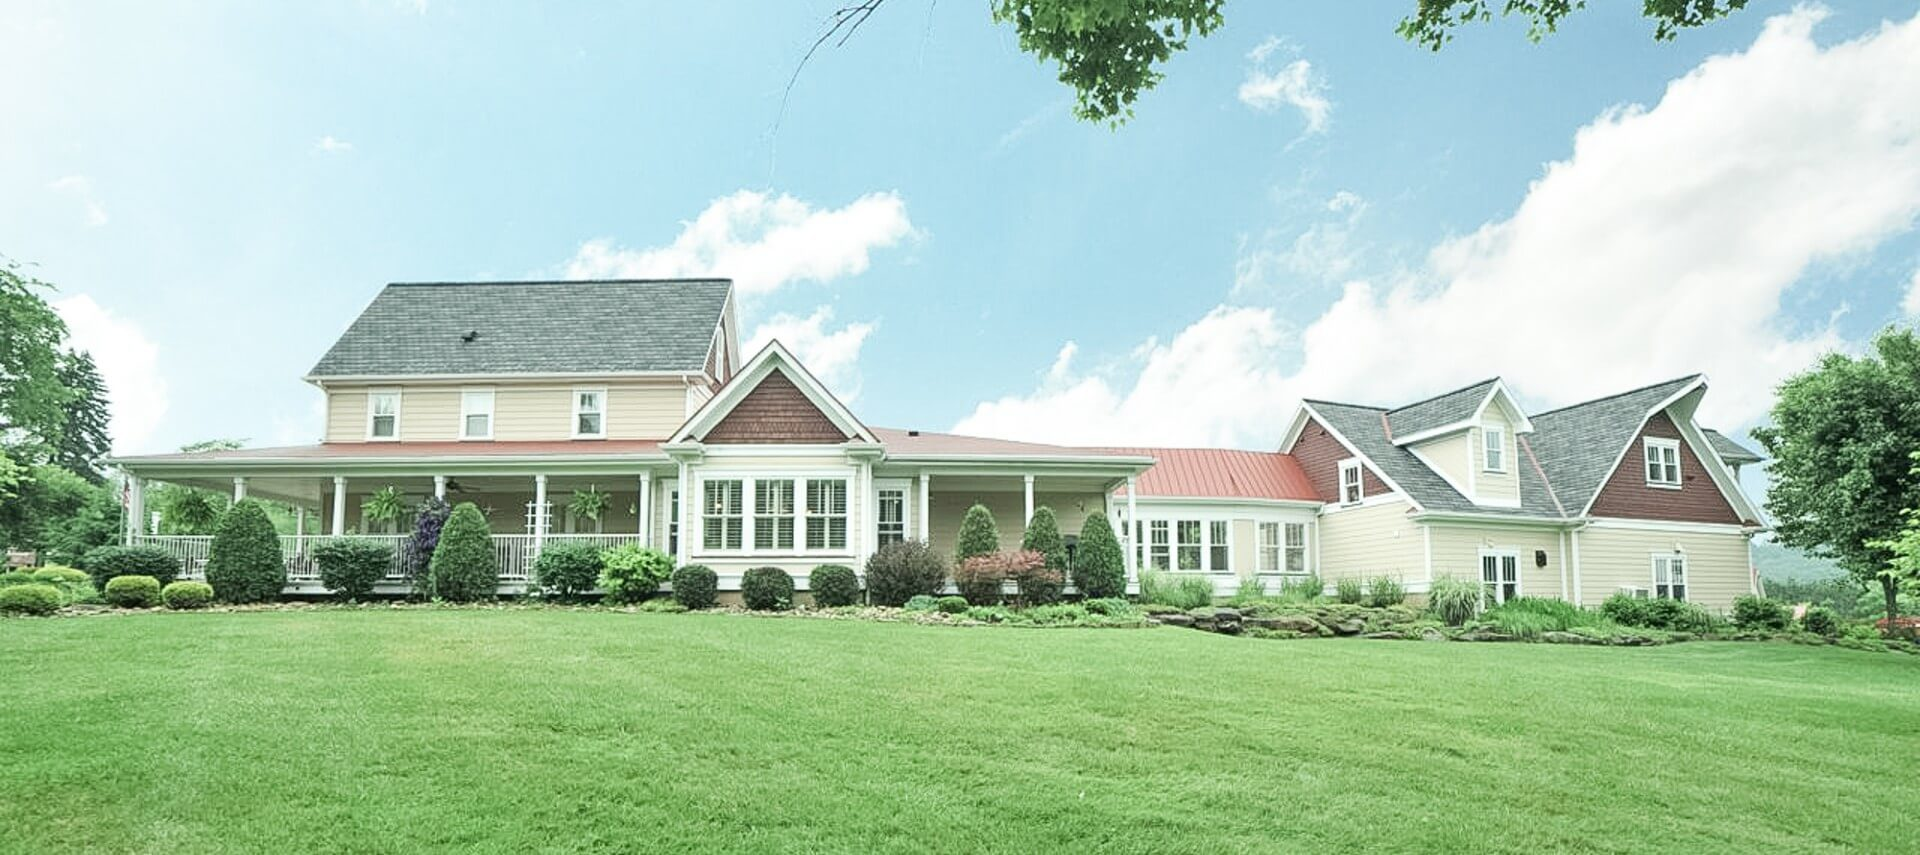 Expansive home wth yellow siding and large wrap around porch surrounded by lawn and landscaping